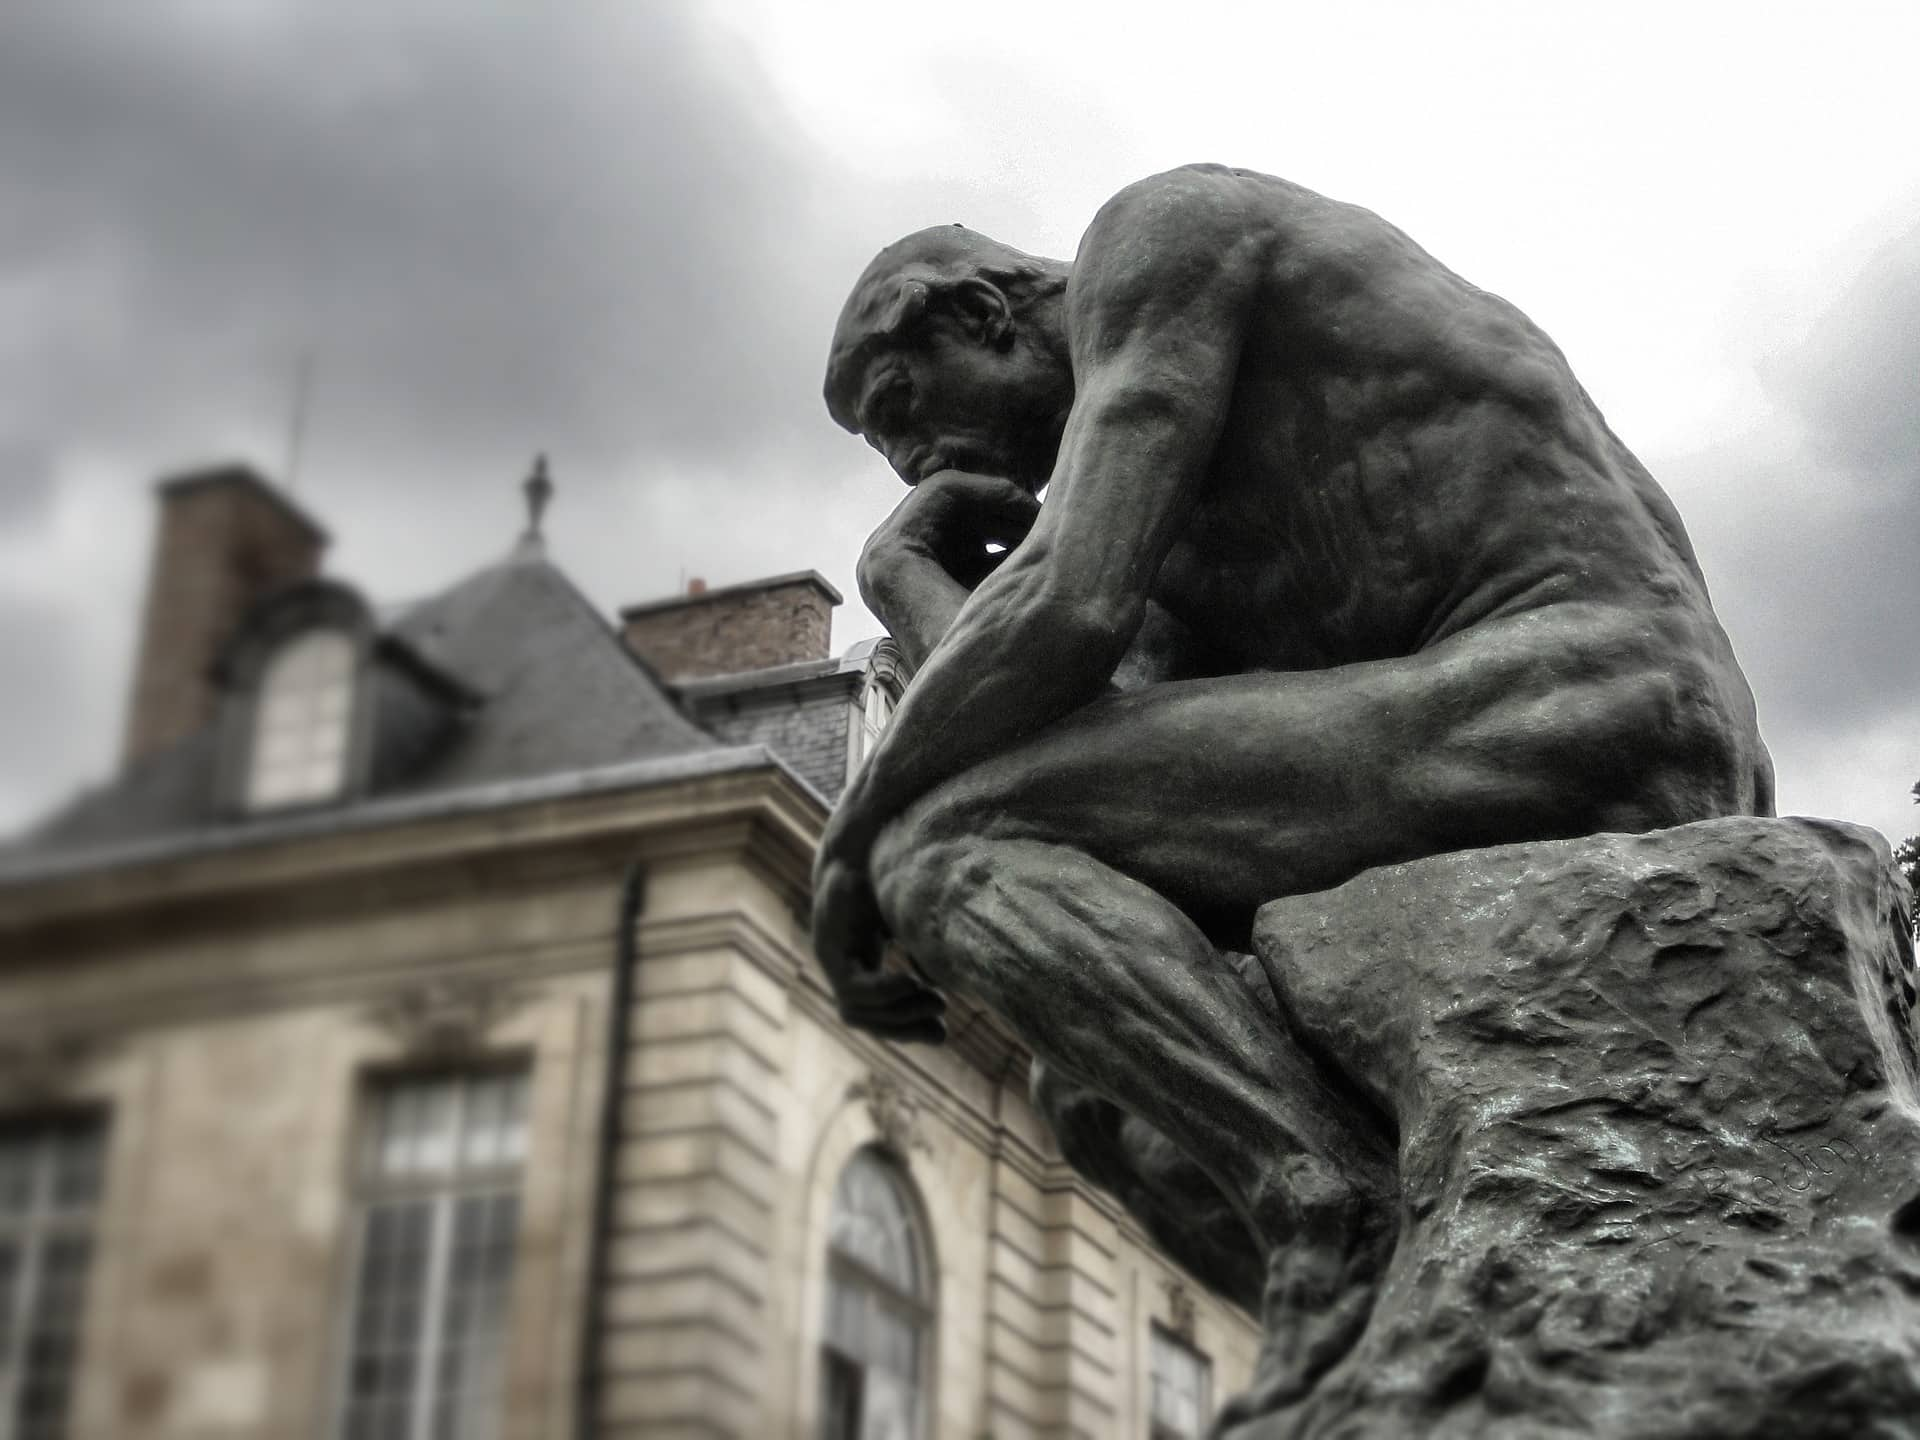 The Thinker- Rodin- Creativity- Nancy Hillis MD and Bruce Sawhill PhD